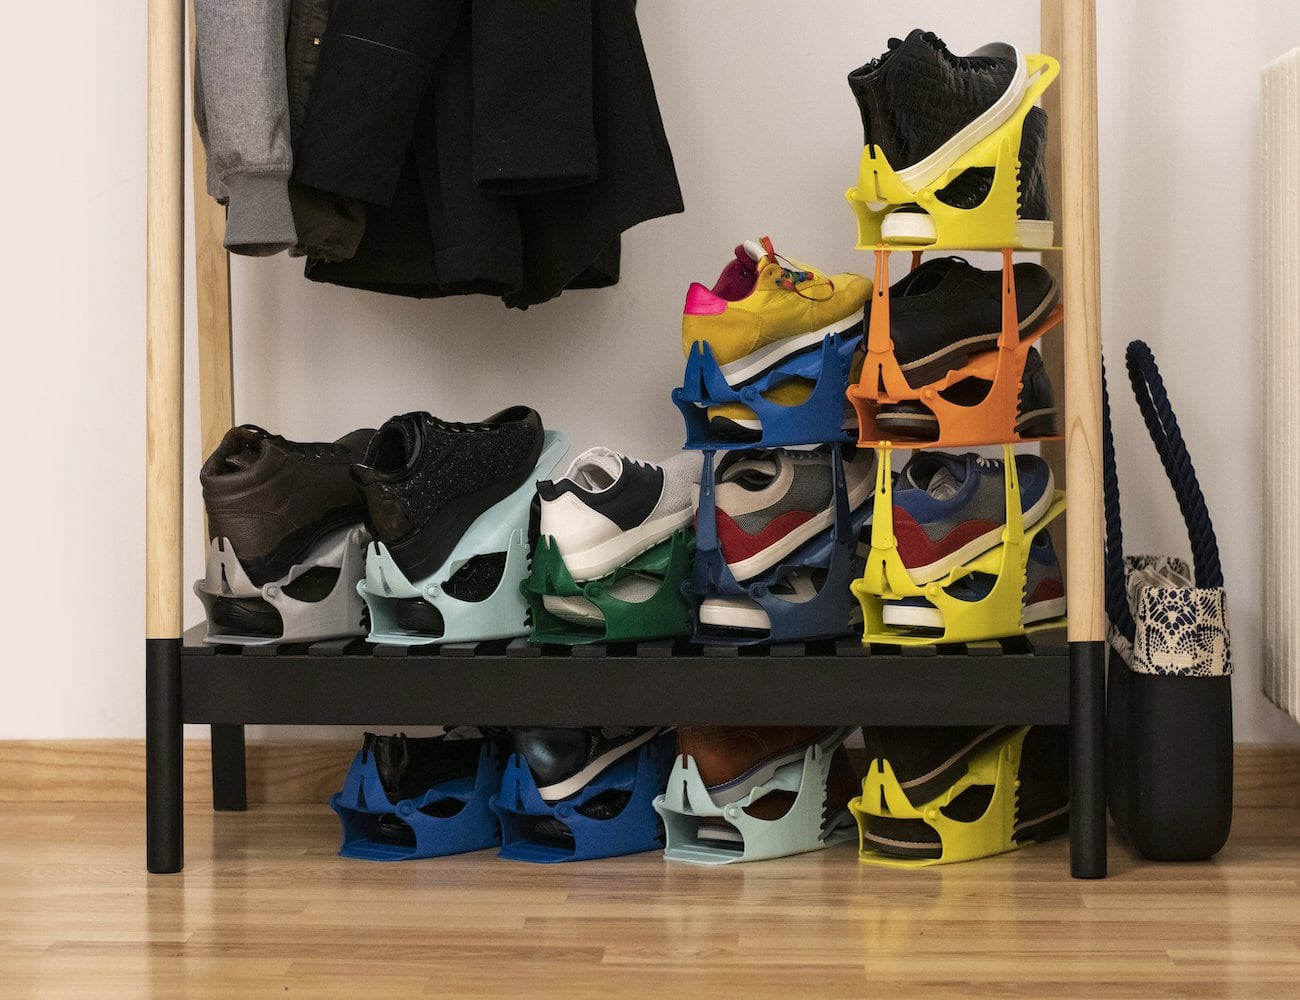 ShoeSpace Stacking Shoe Organizer can save 80% of your shoe space